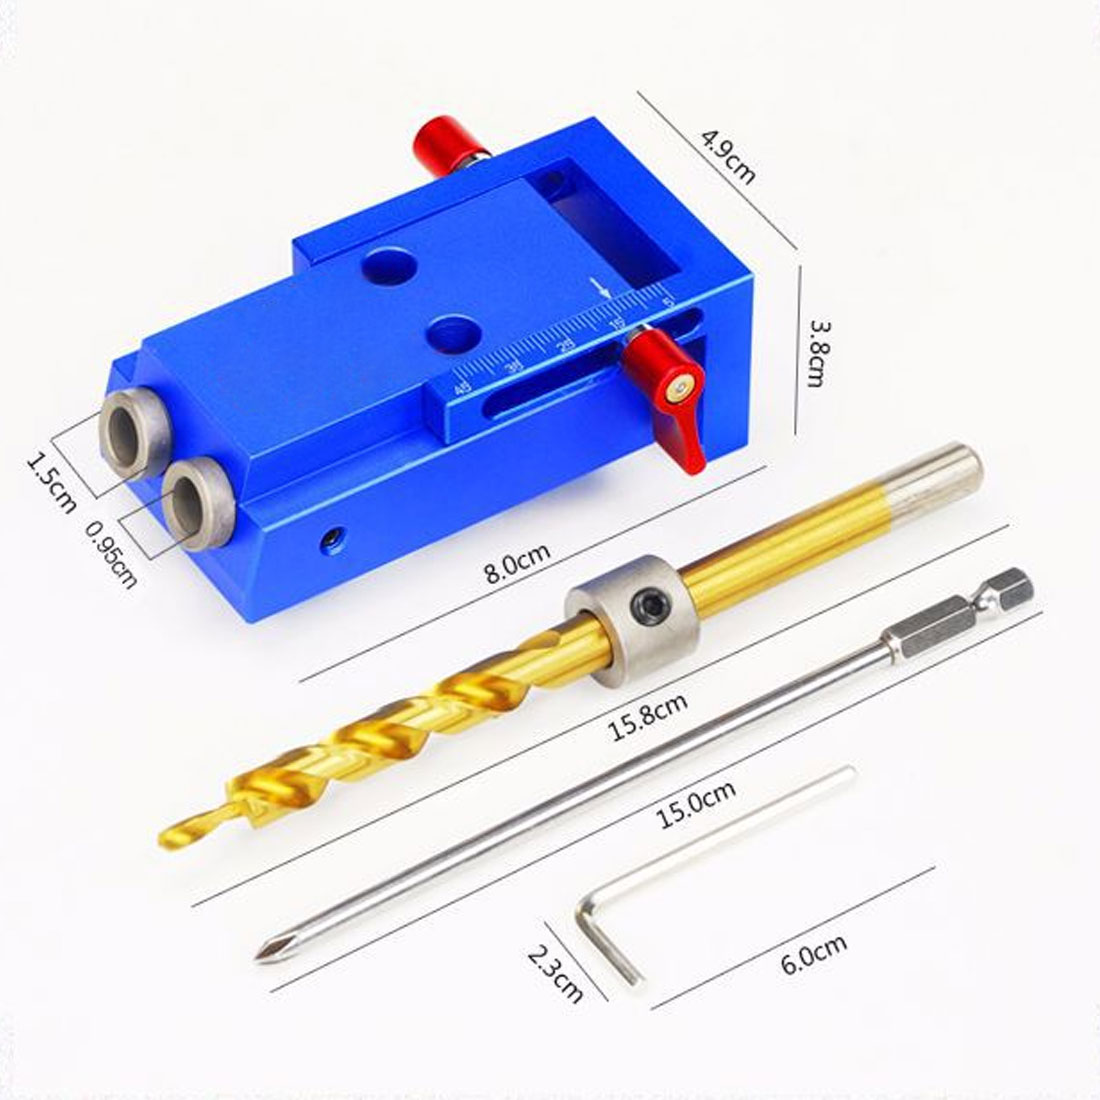 Woodworking Pocket Hole Jig Kit 6/8/10mm Angle Drill Guide Set Hole Puncher Locator Jig Drill Bit Set For DIY Carpentry Tools replacement 6mm male thread dia 34mm height knurled grip knob zmm